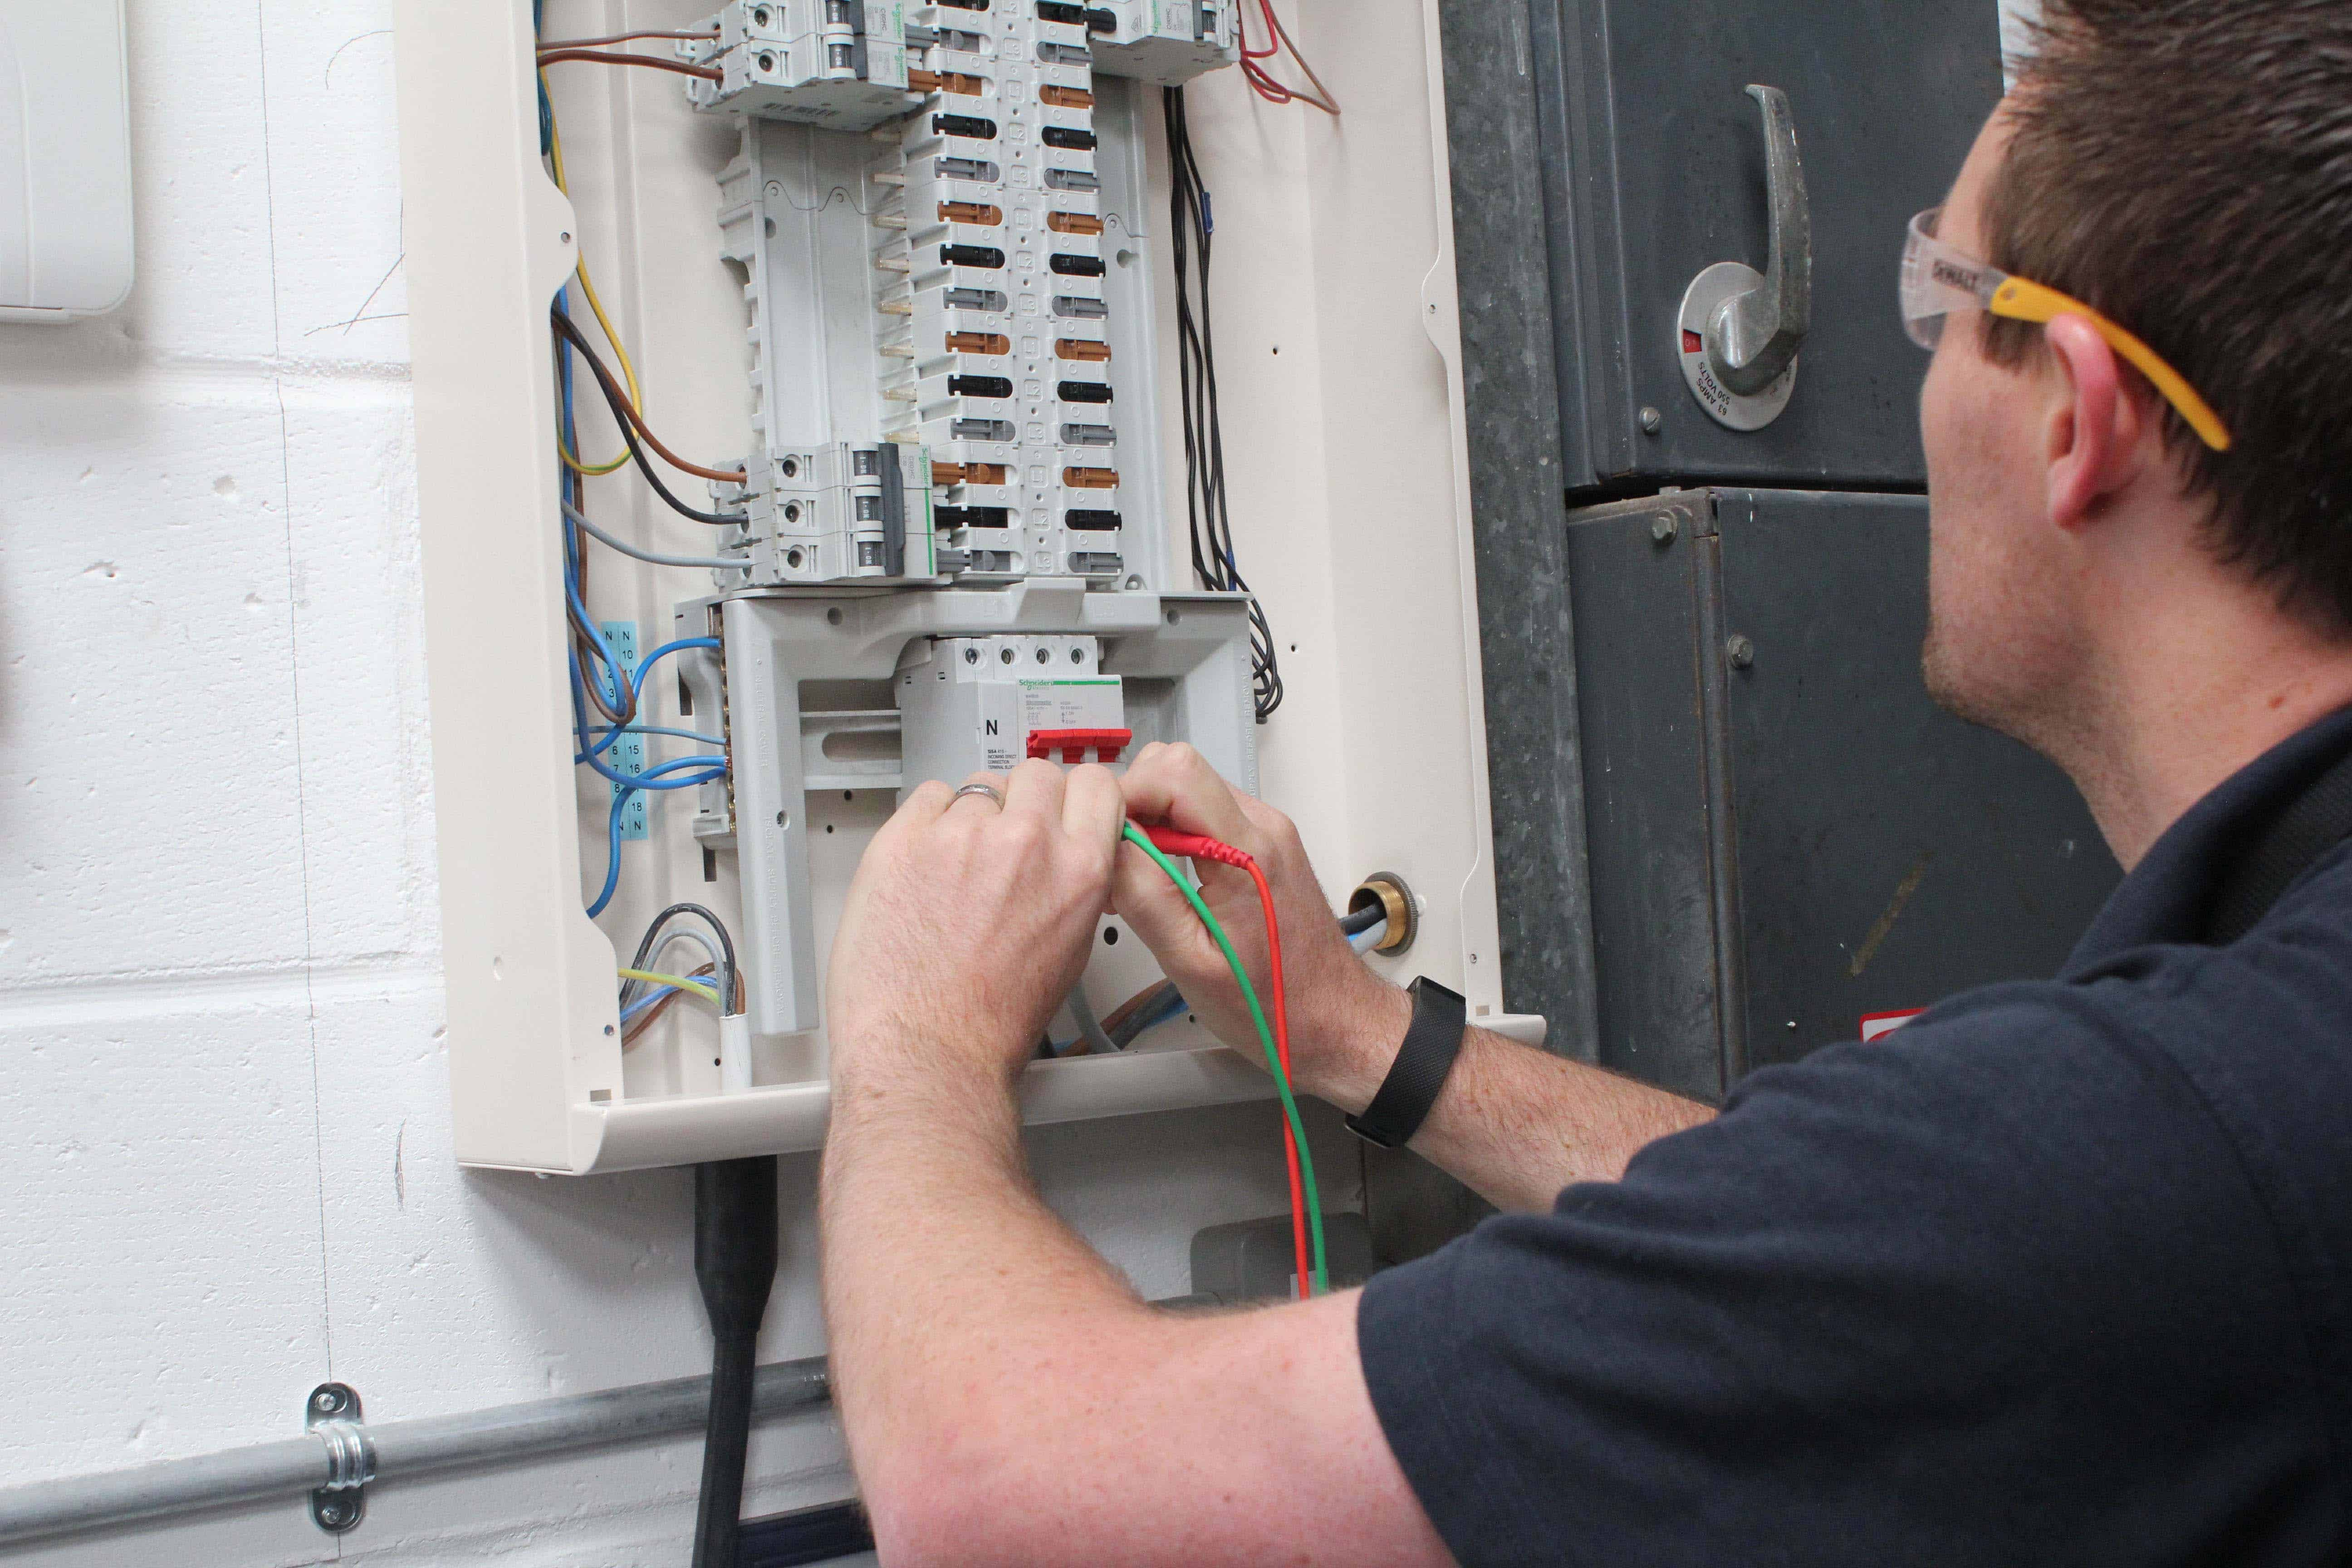 Electrical testing and fixed wire inspection services. Engineer performing electrical test.